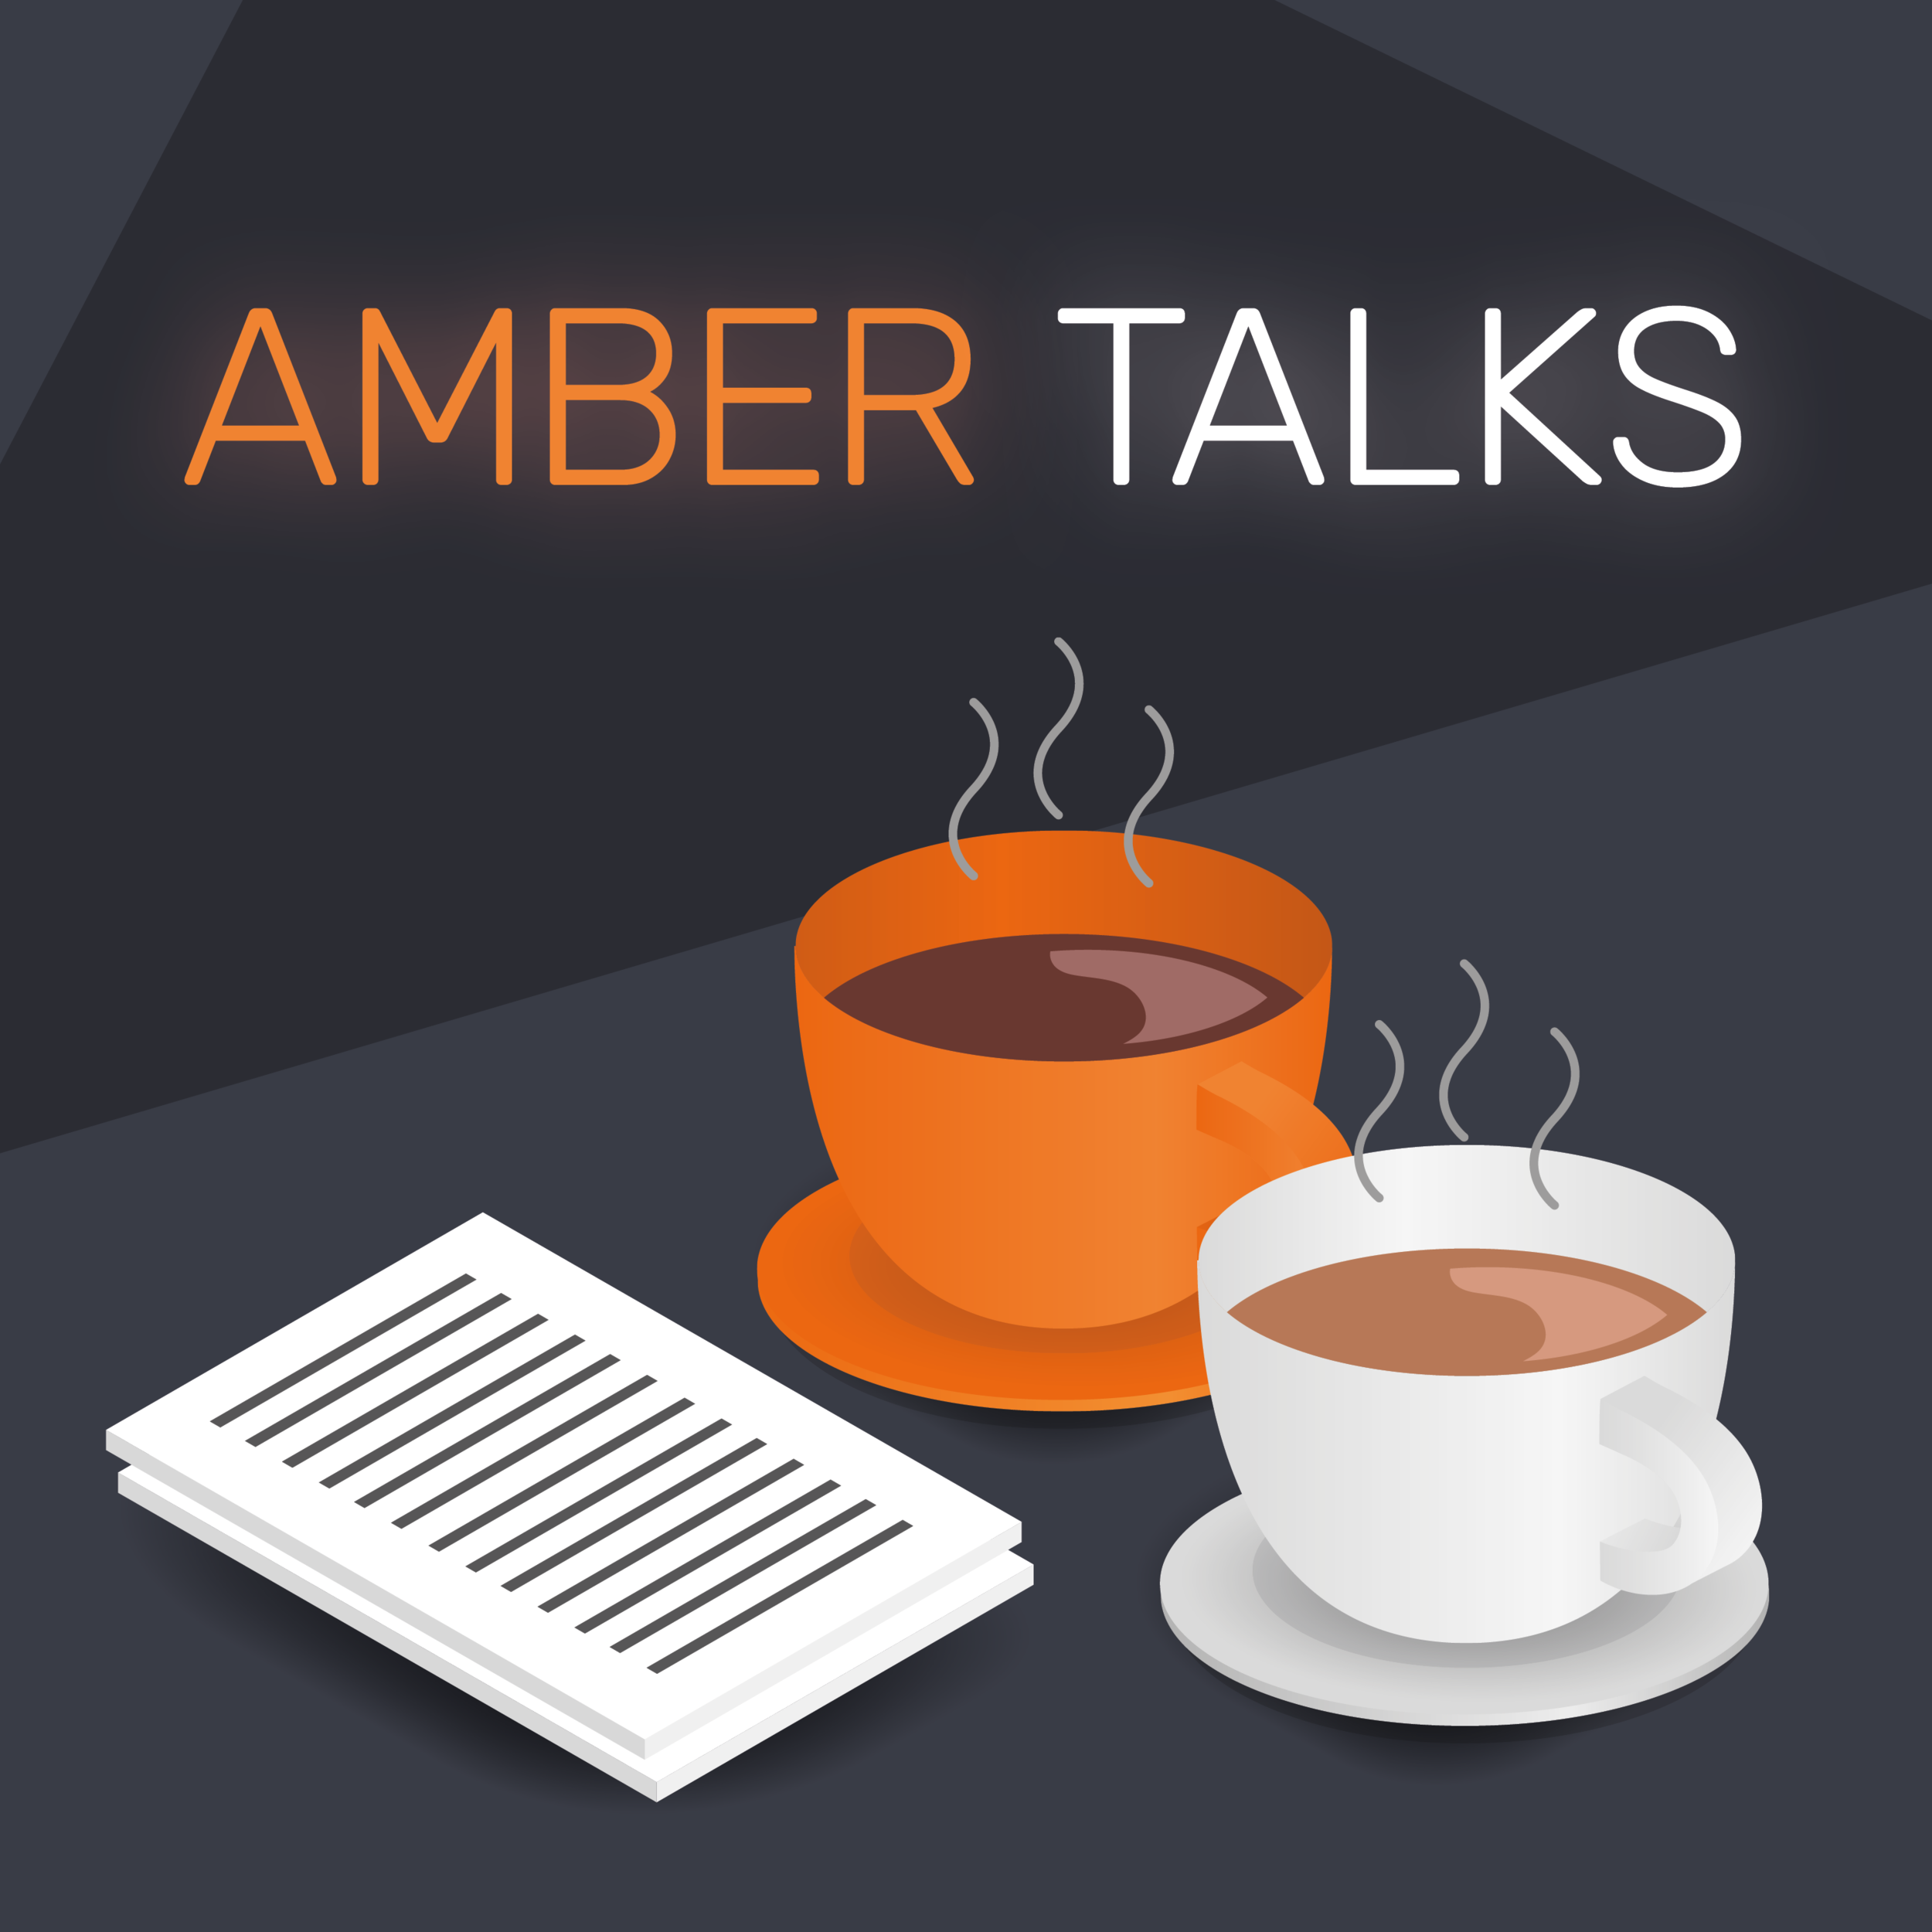 ae Podcast - amber talks.png